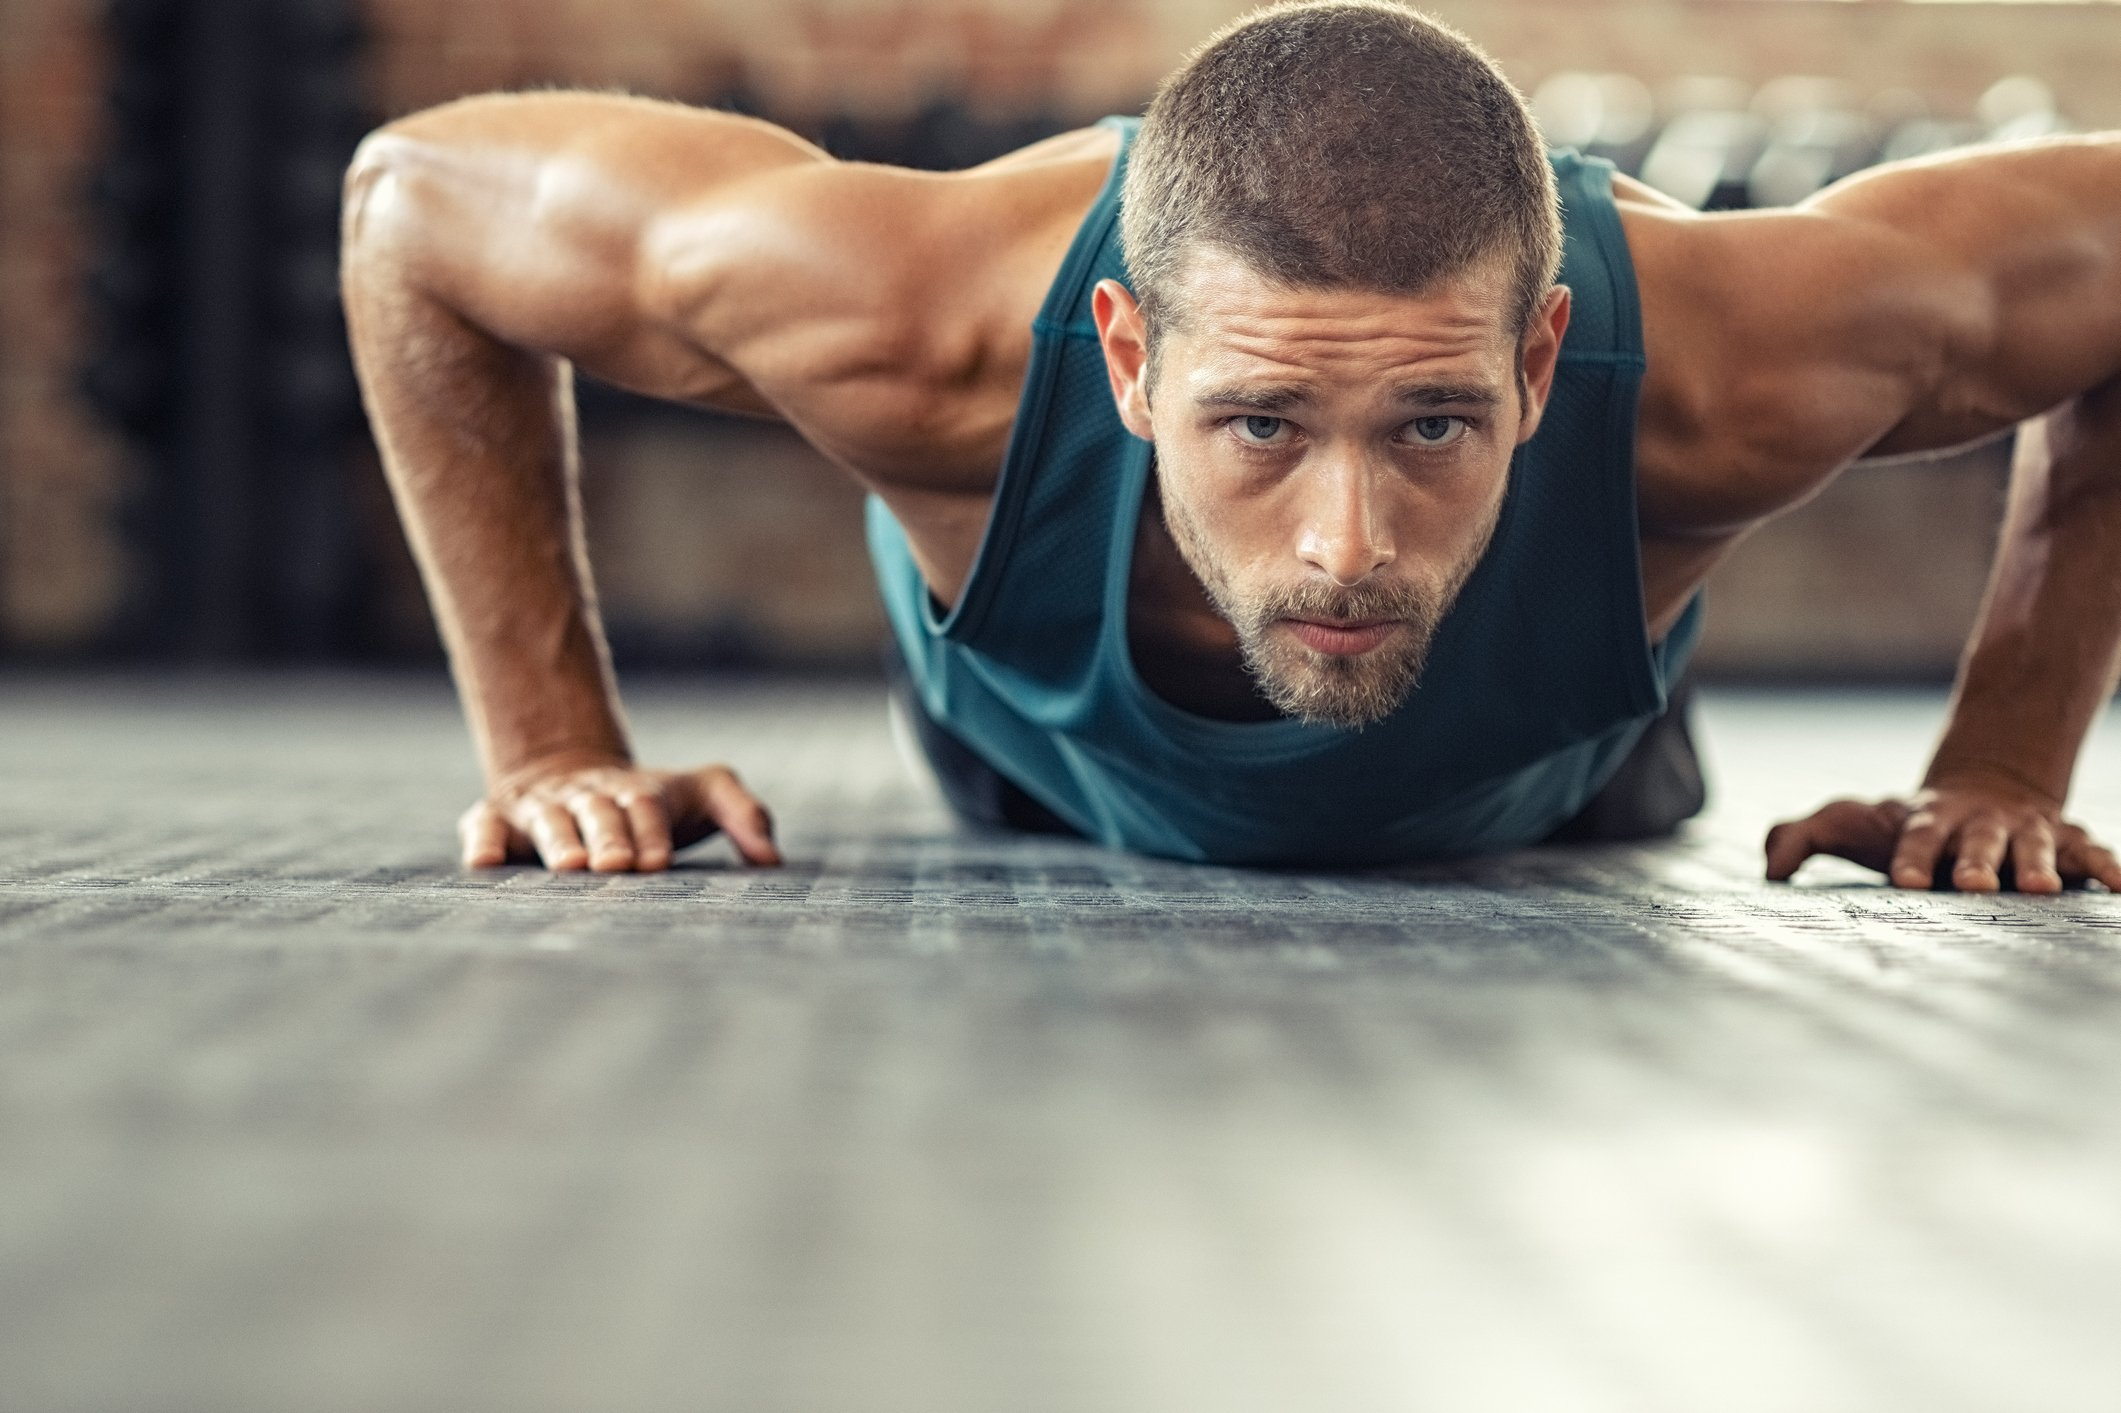 Push Up Workout | 6 Push-Up Exercise Variations For Chest Growth